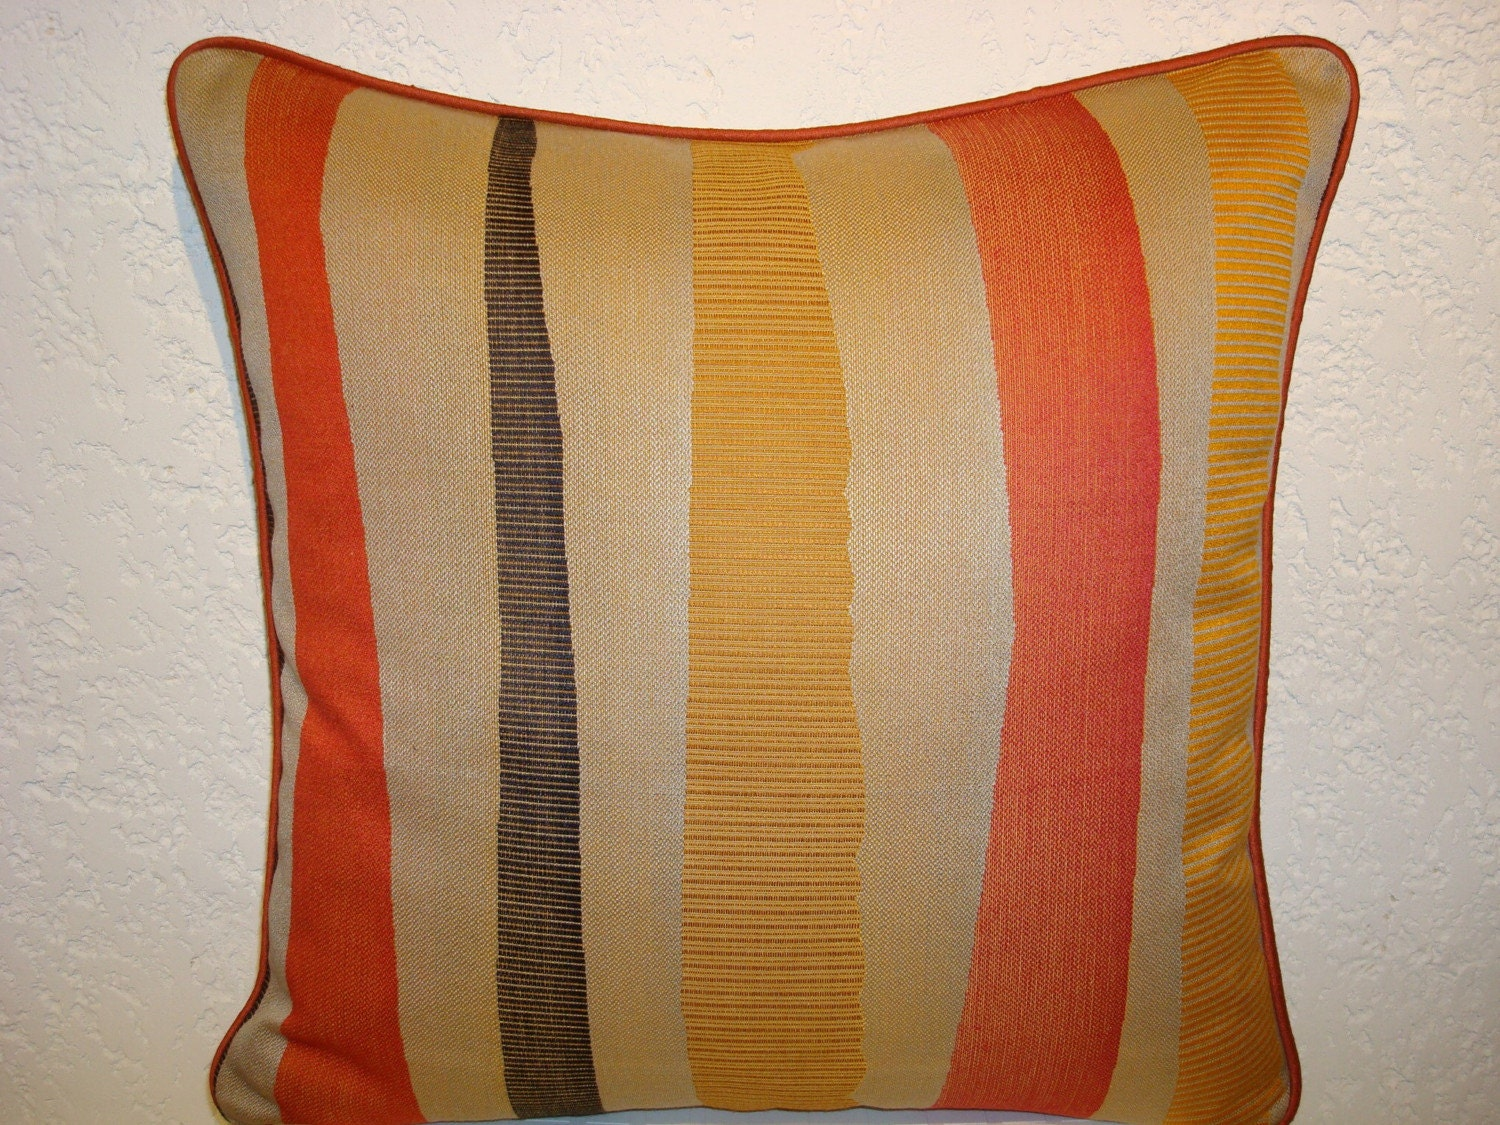 Modern Graphic Striped Pillow stone orange black yellow